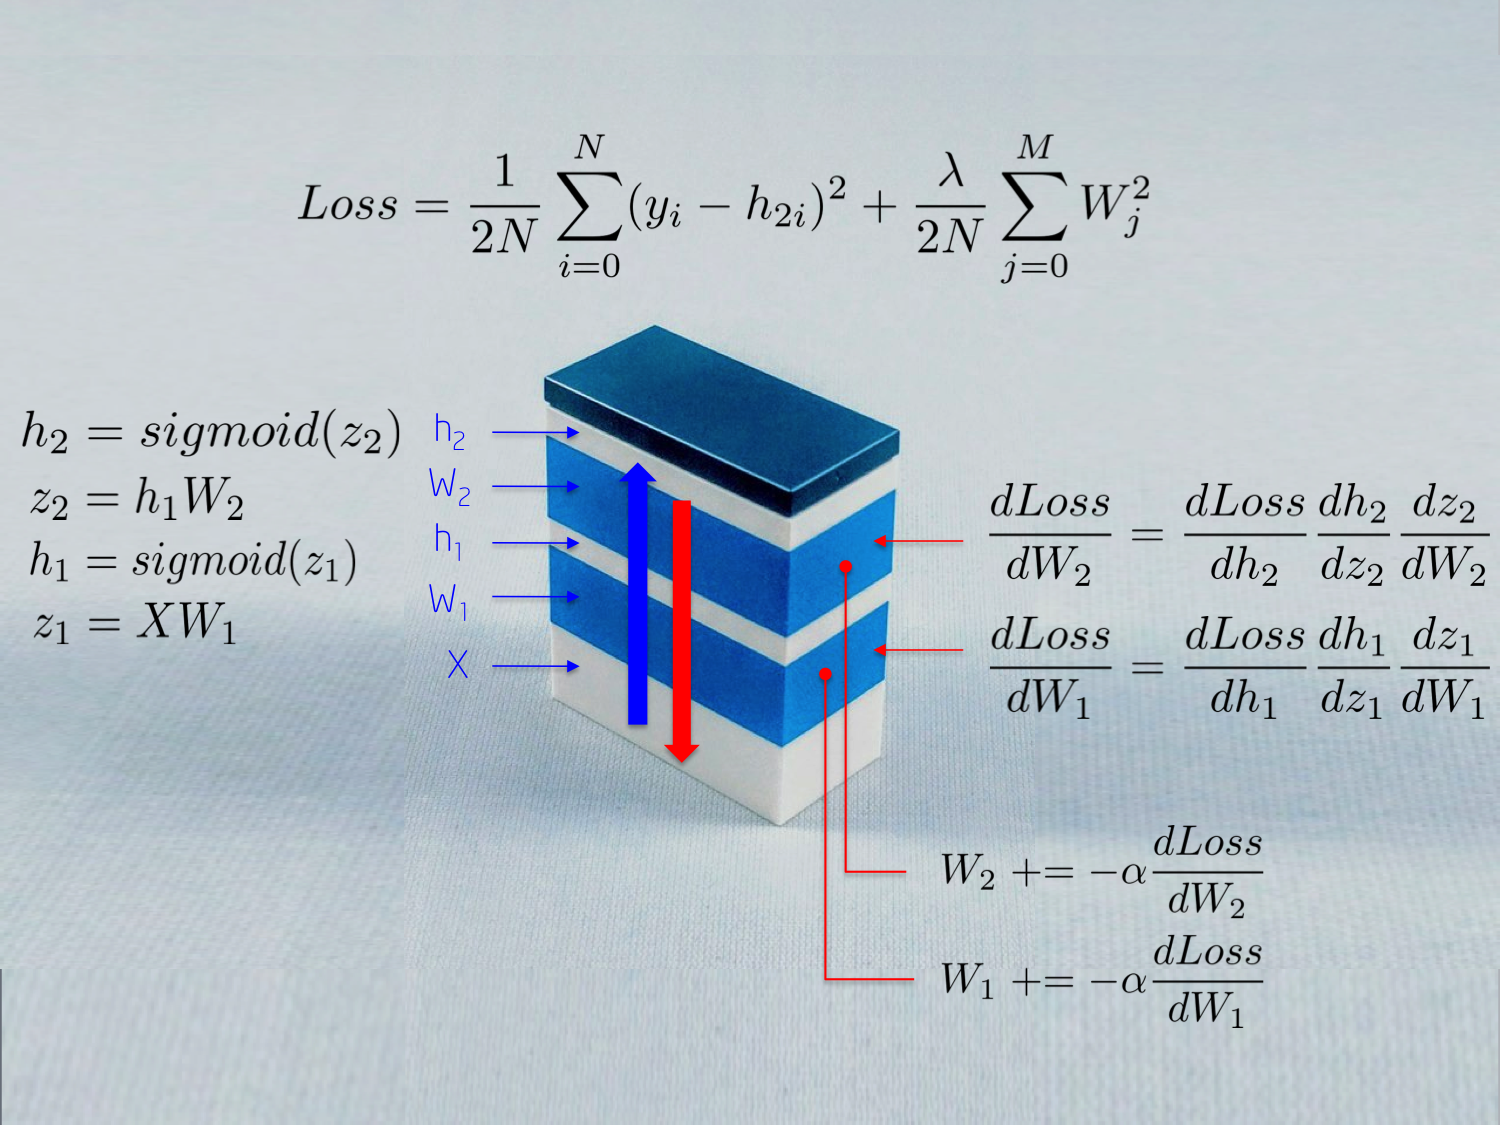 One LEGO at a time: Explaining the Math of How Neural Networks Learn